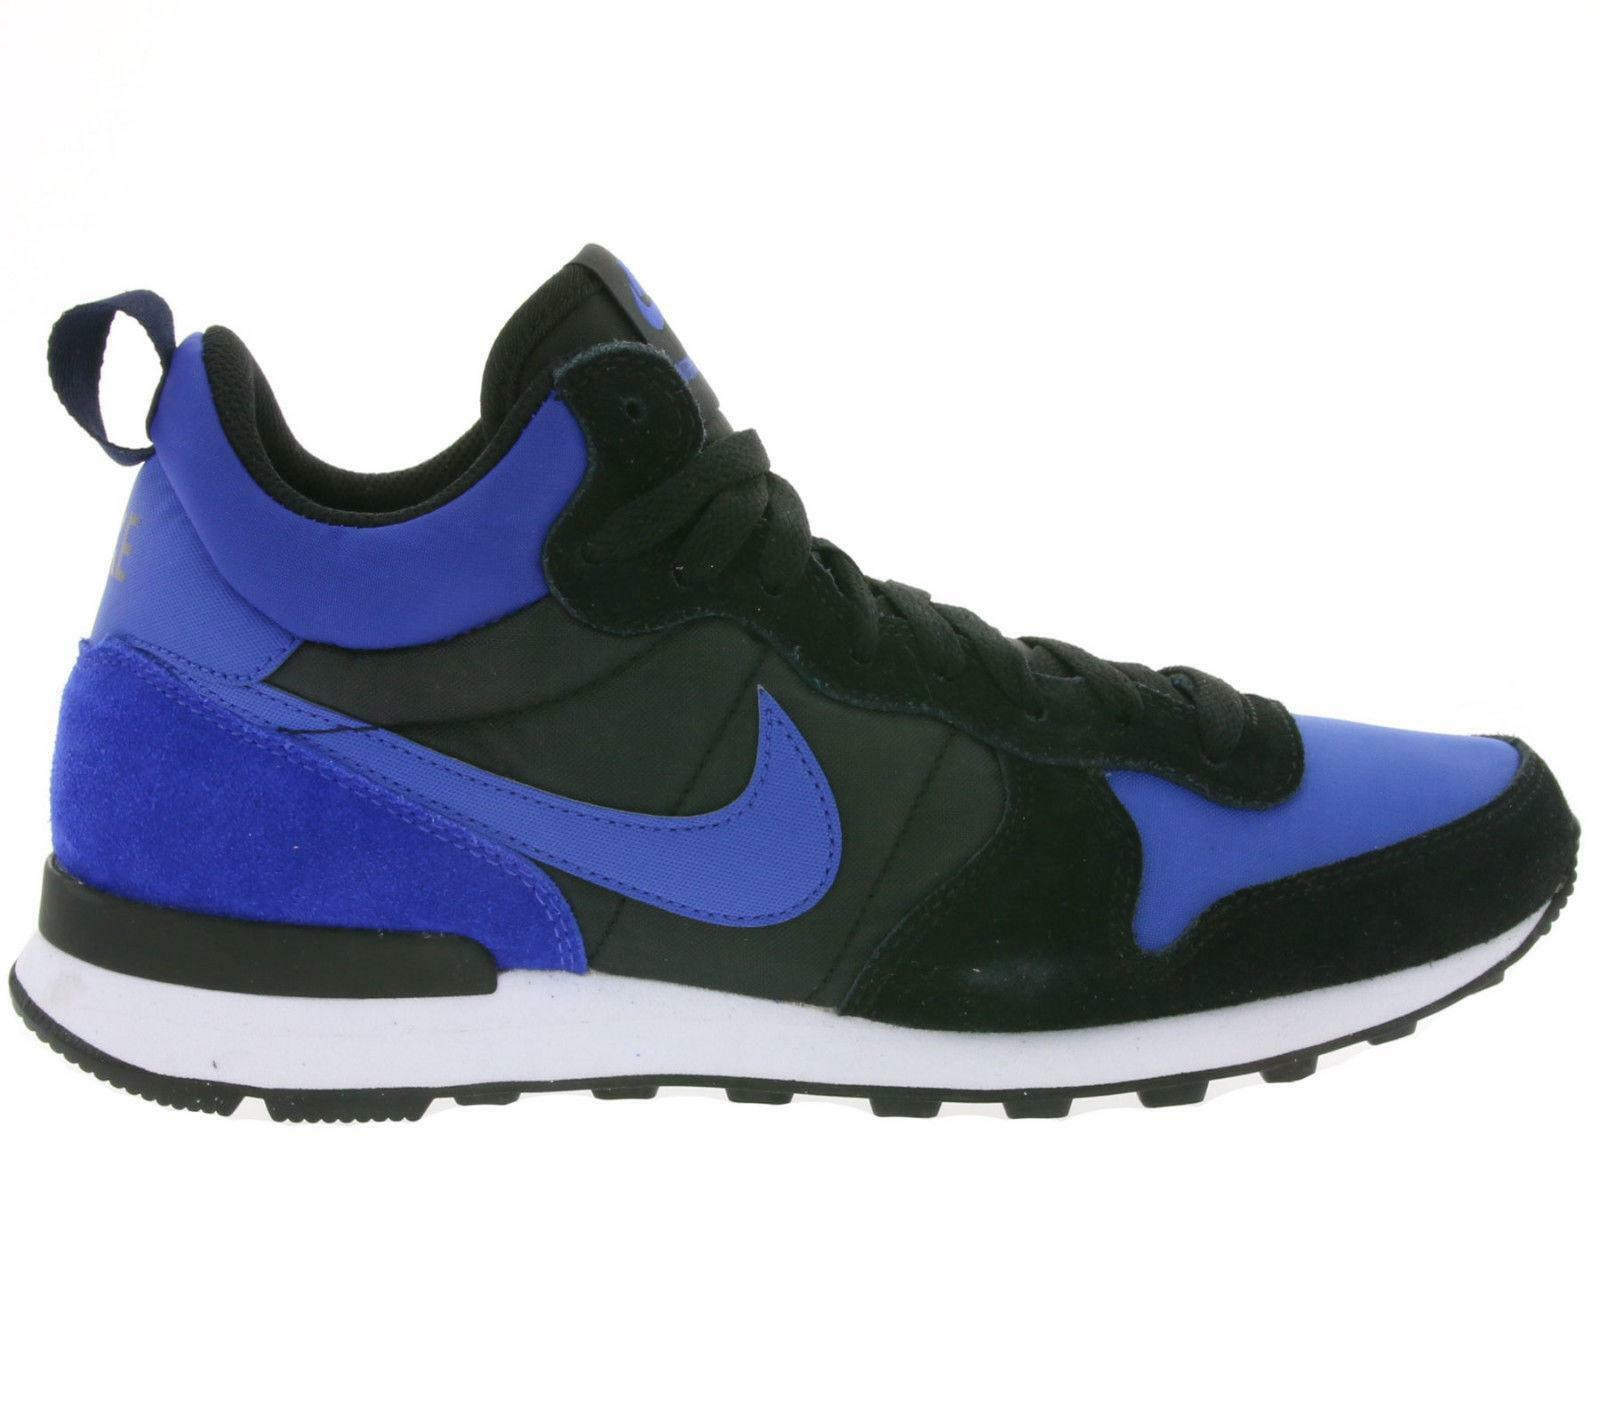 Nike Real Hombre Internationalist Medio Azul Real Nike Zapatillas 682844 404 37b16b